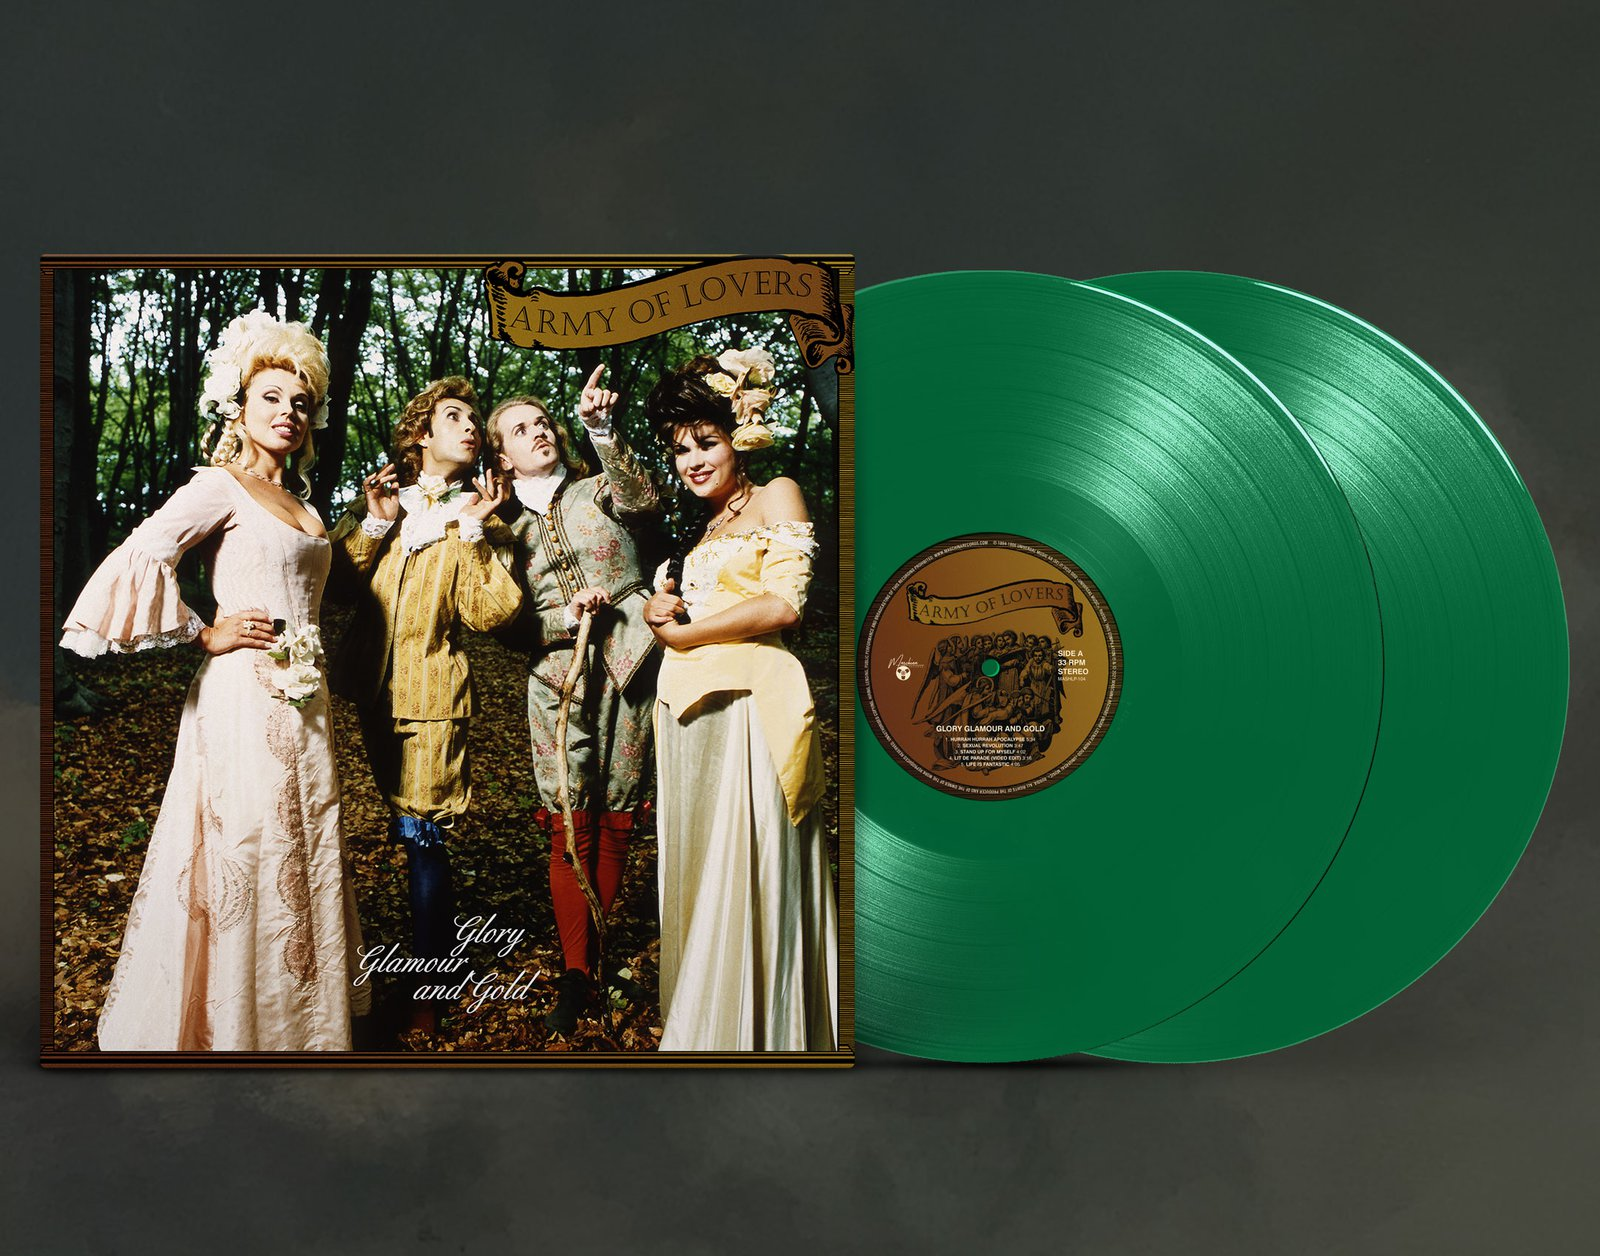 Army of Lovers Glory, Glamour & Gold